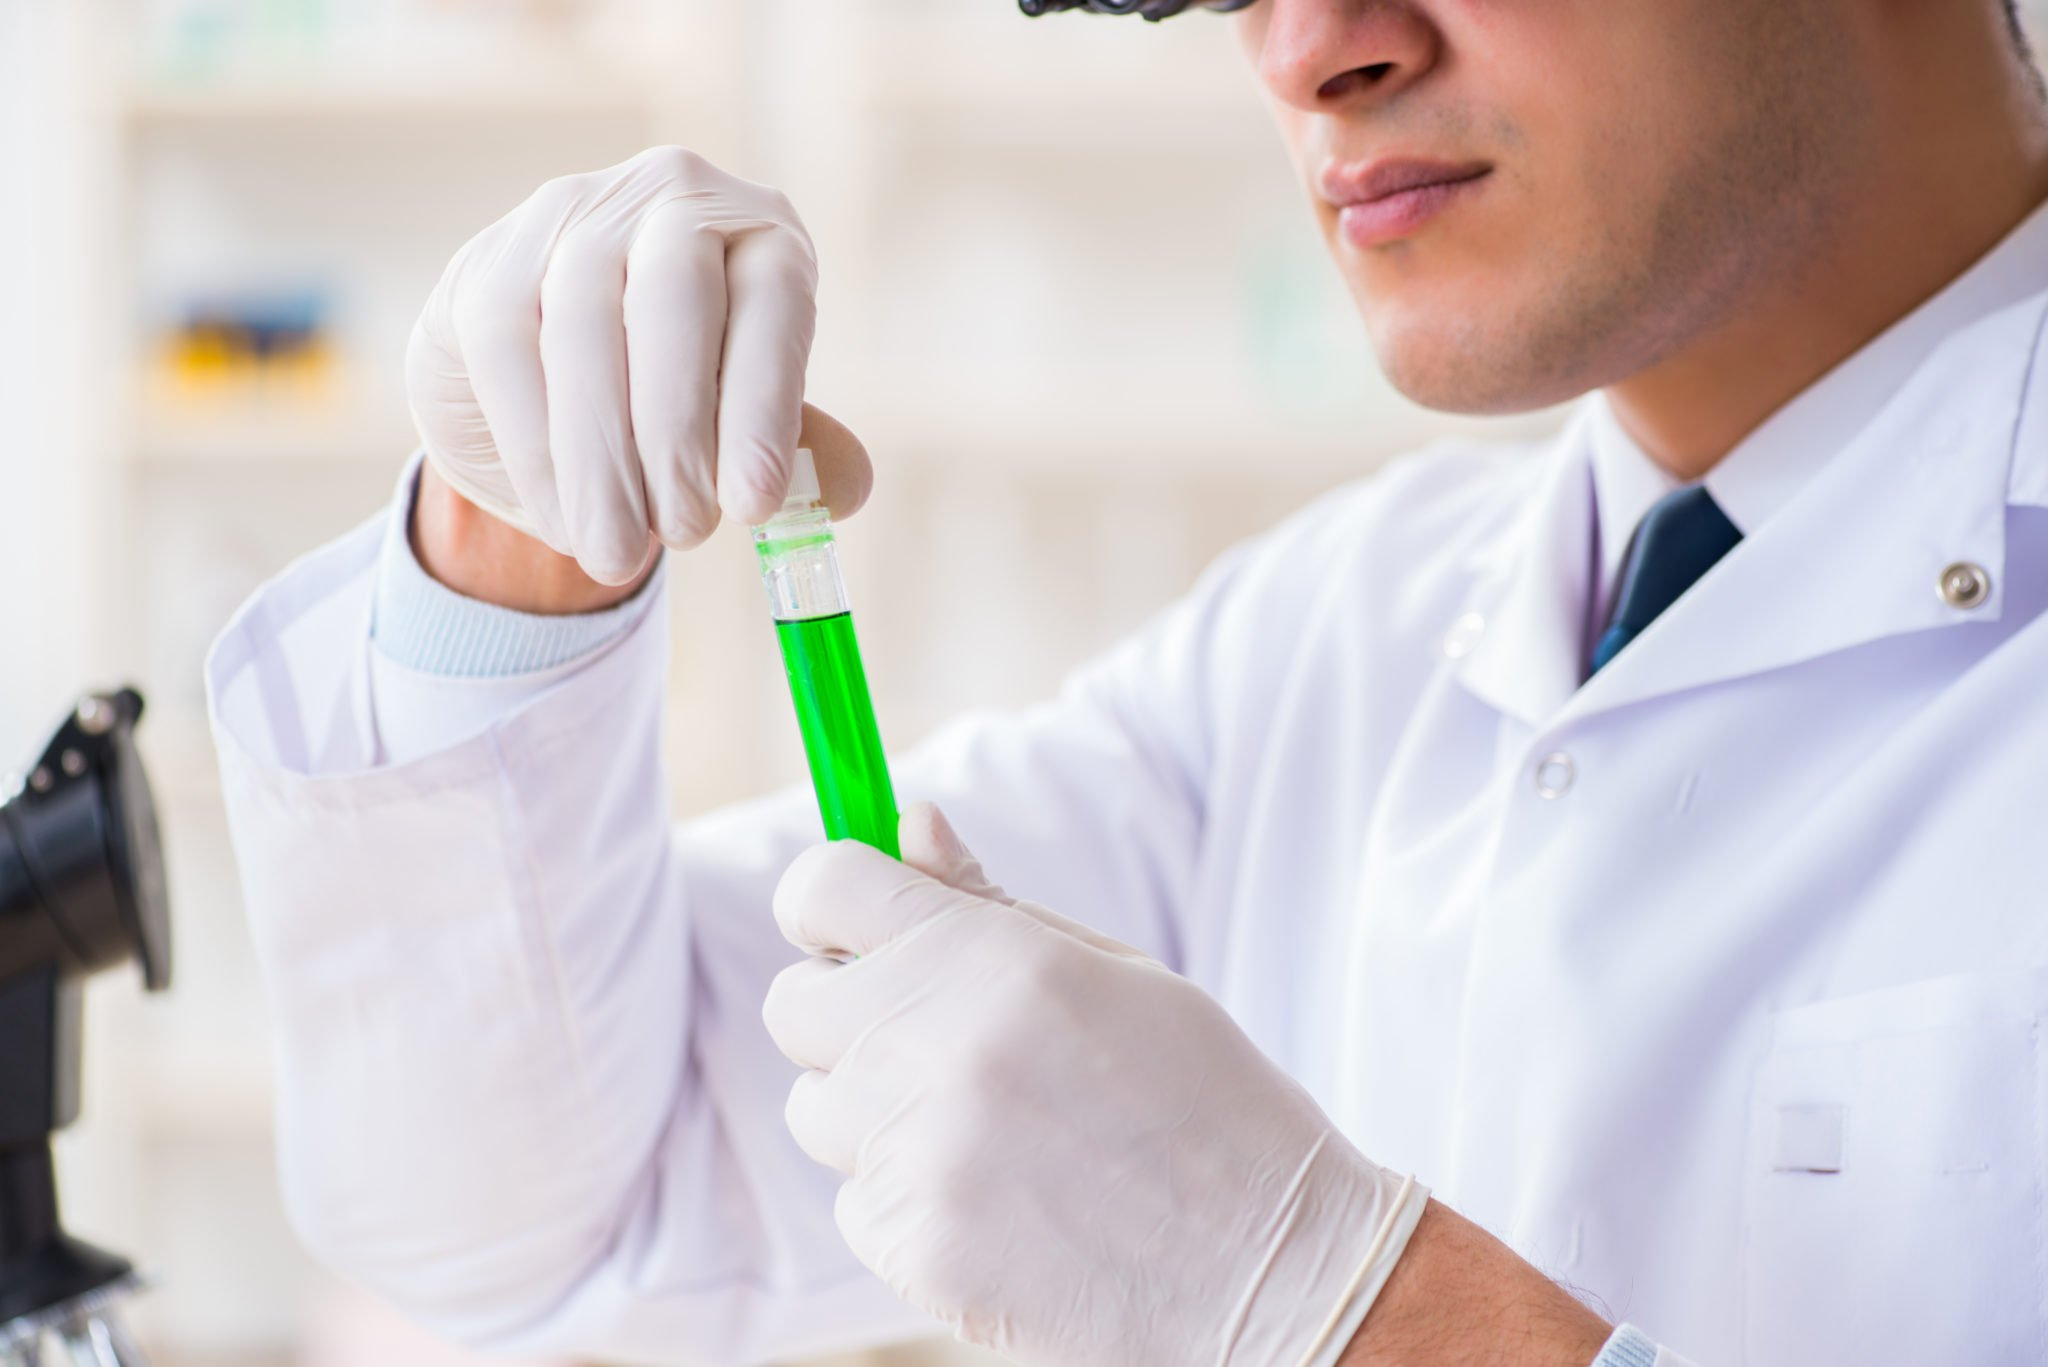 Increased federal oversight could help improve the quality of cannabis testing labs, and cannabis and hemp products in general. Photo: A scientist in gloves and a white lab coat examines a test tube of green liquid, with a microscope nearby.